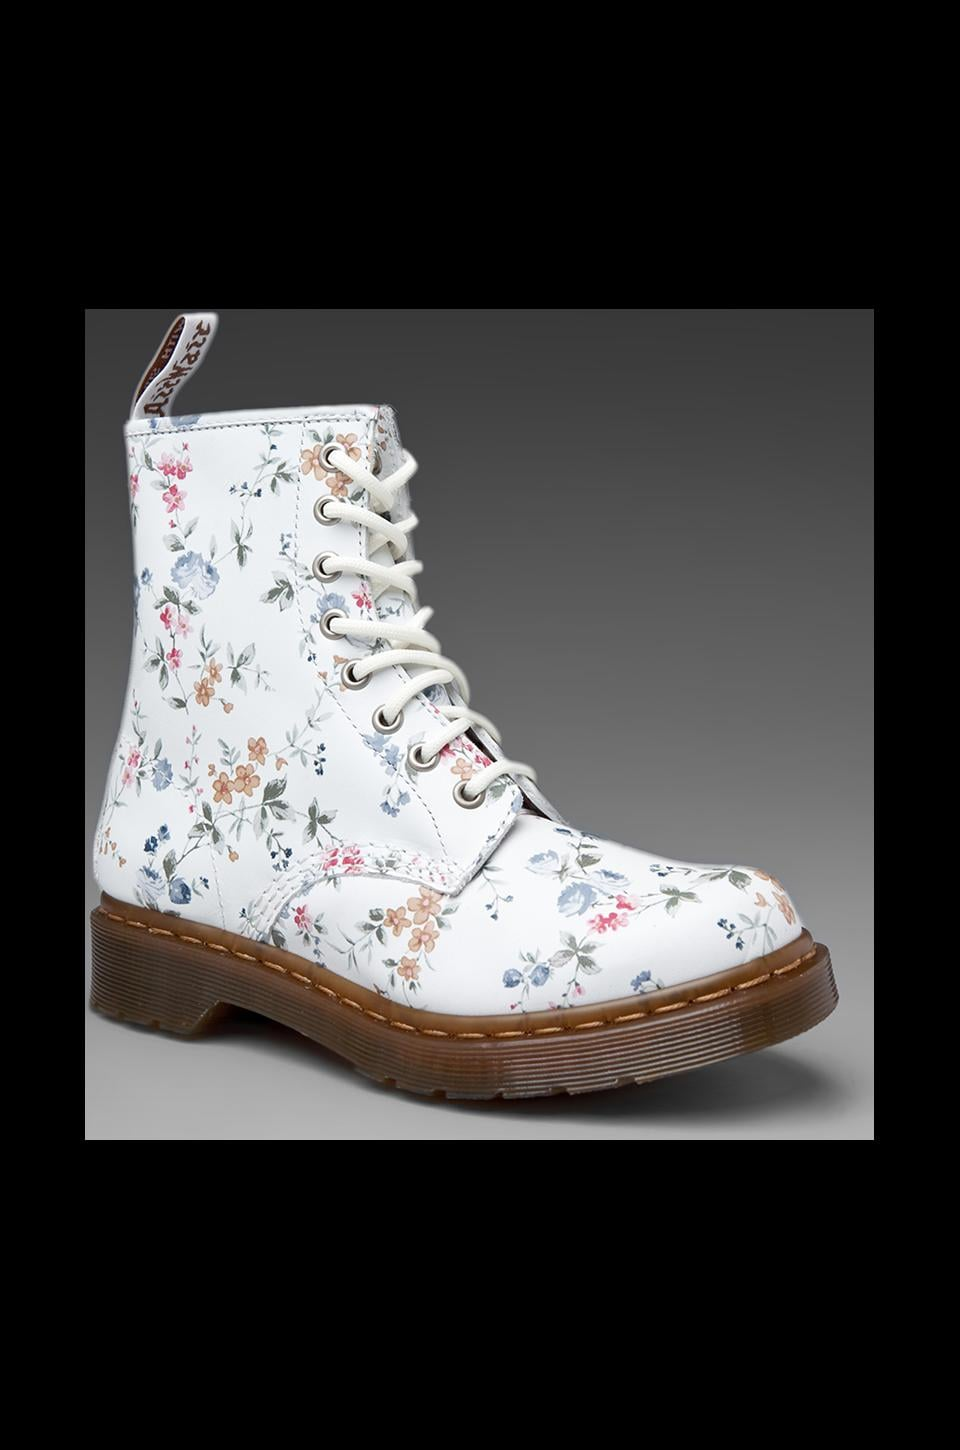 Dr. Martens 1460 W 8-Eye Boot/White in Wild Rose